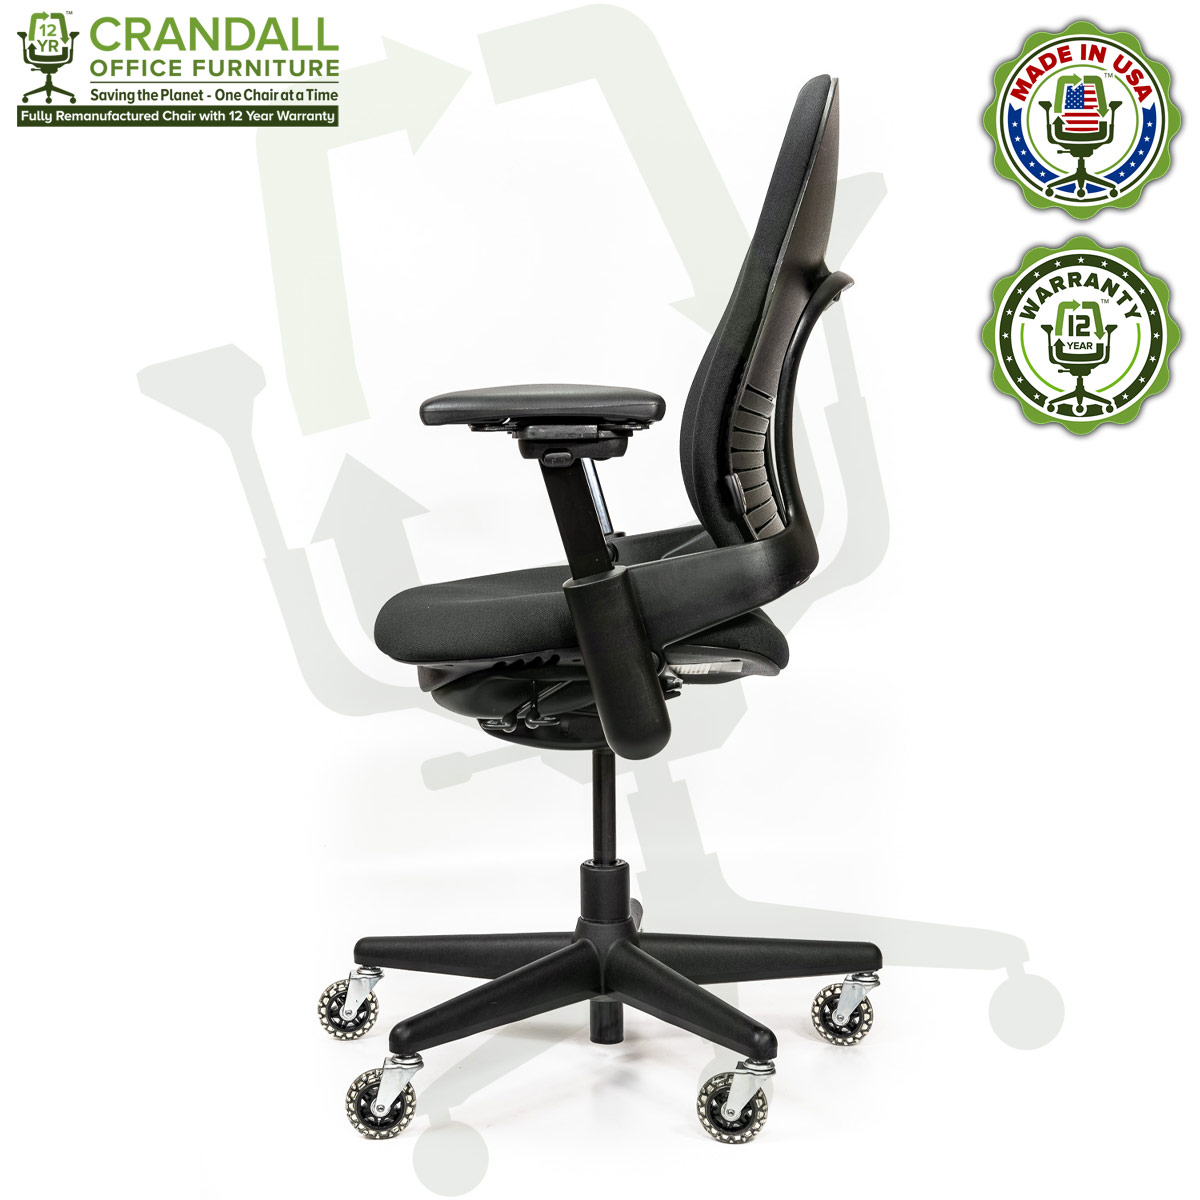 Crandall Office Furniture Remanufactured Steelcase V1 Leap Chair - Highback 003